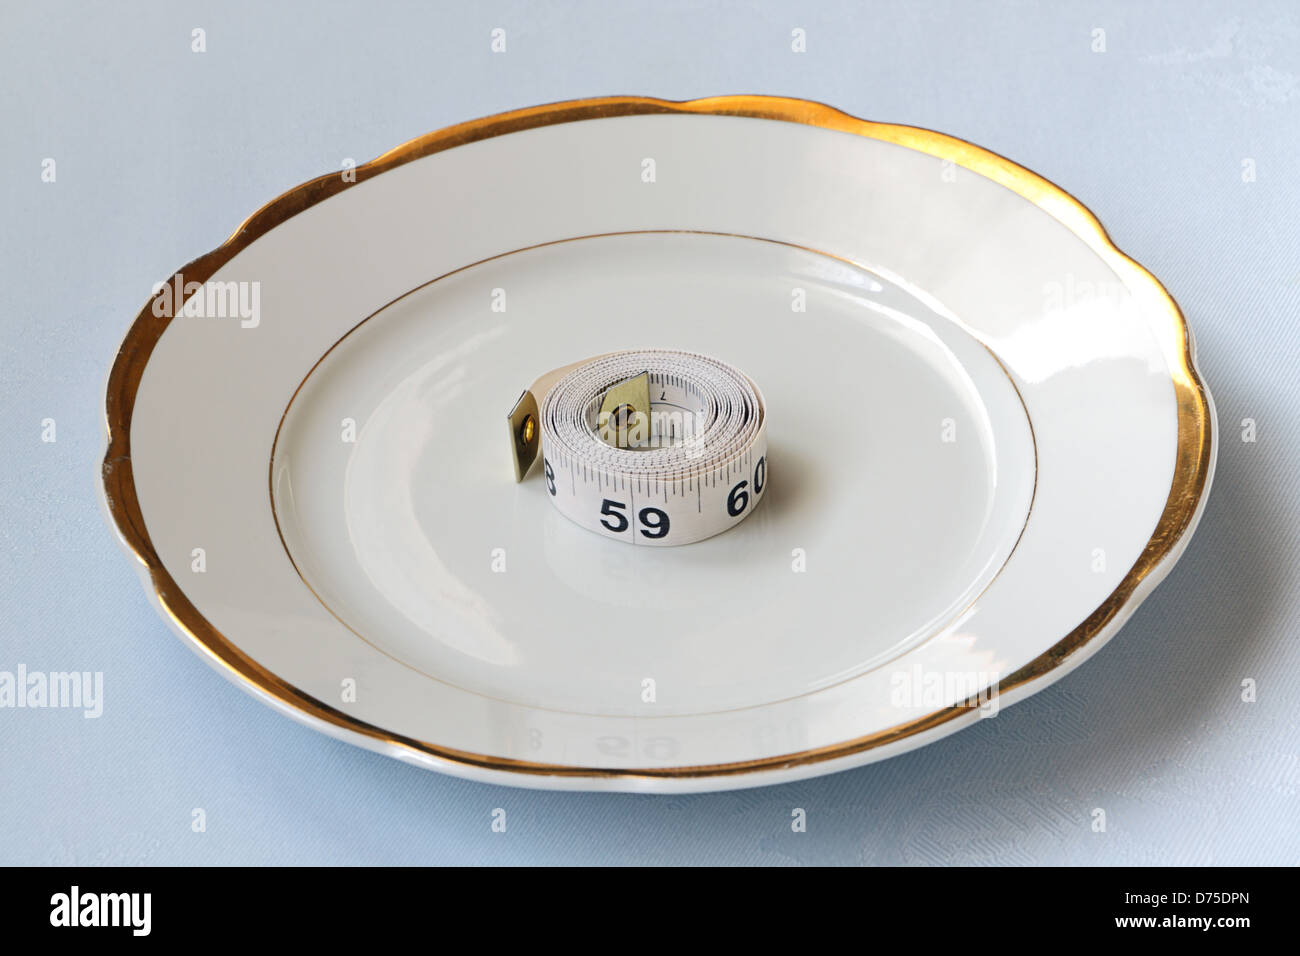 Roll of white centimeter on white china ware - Stock Image